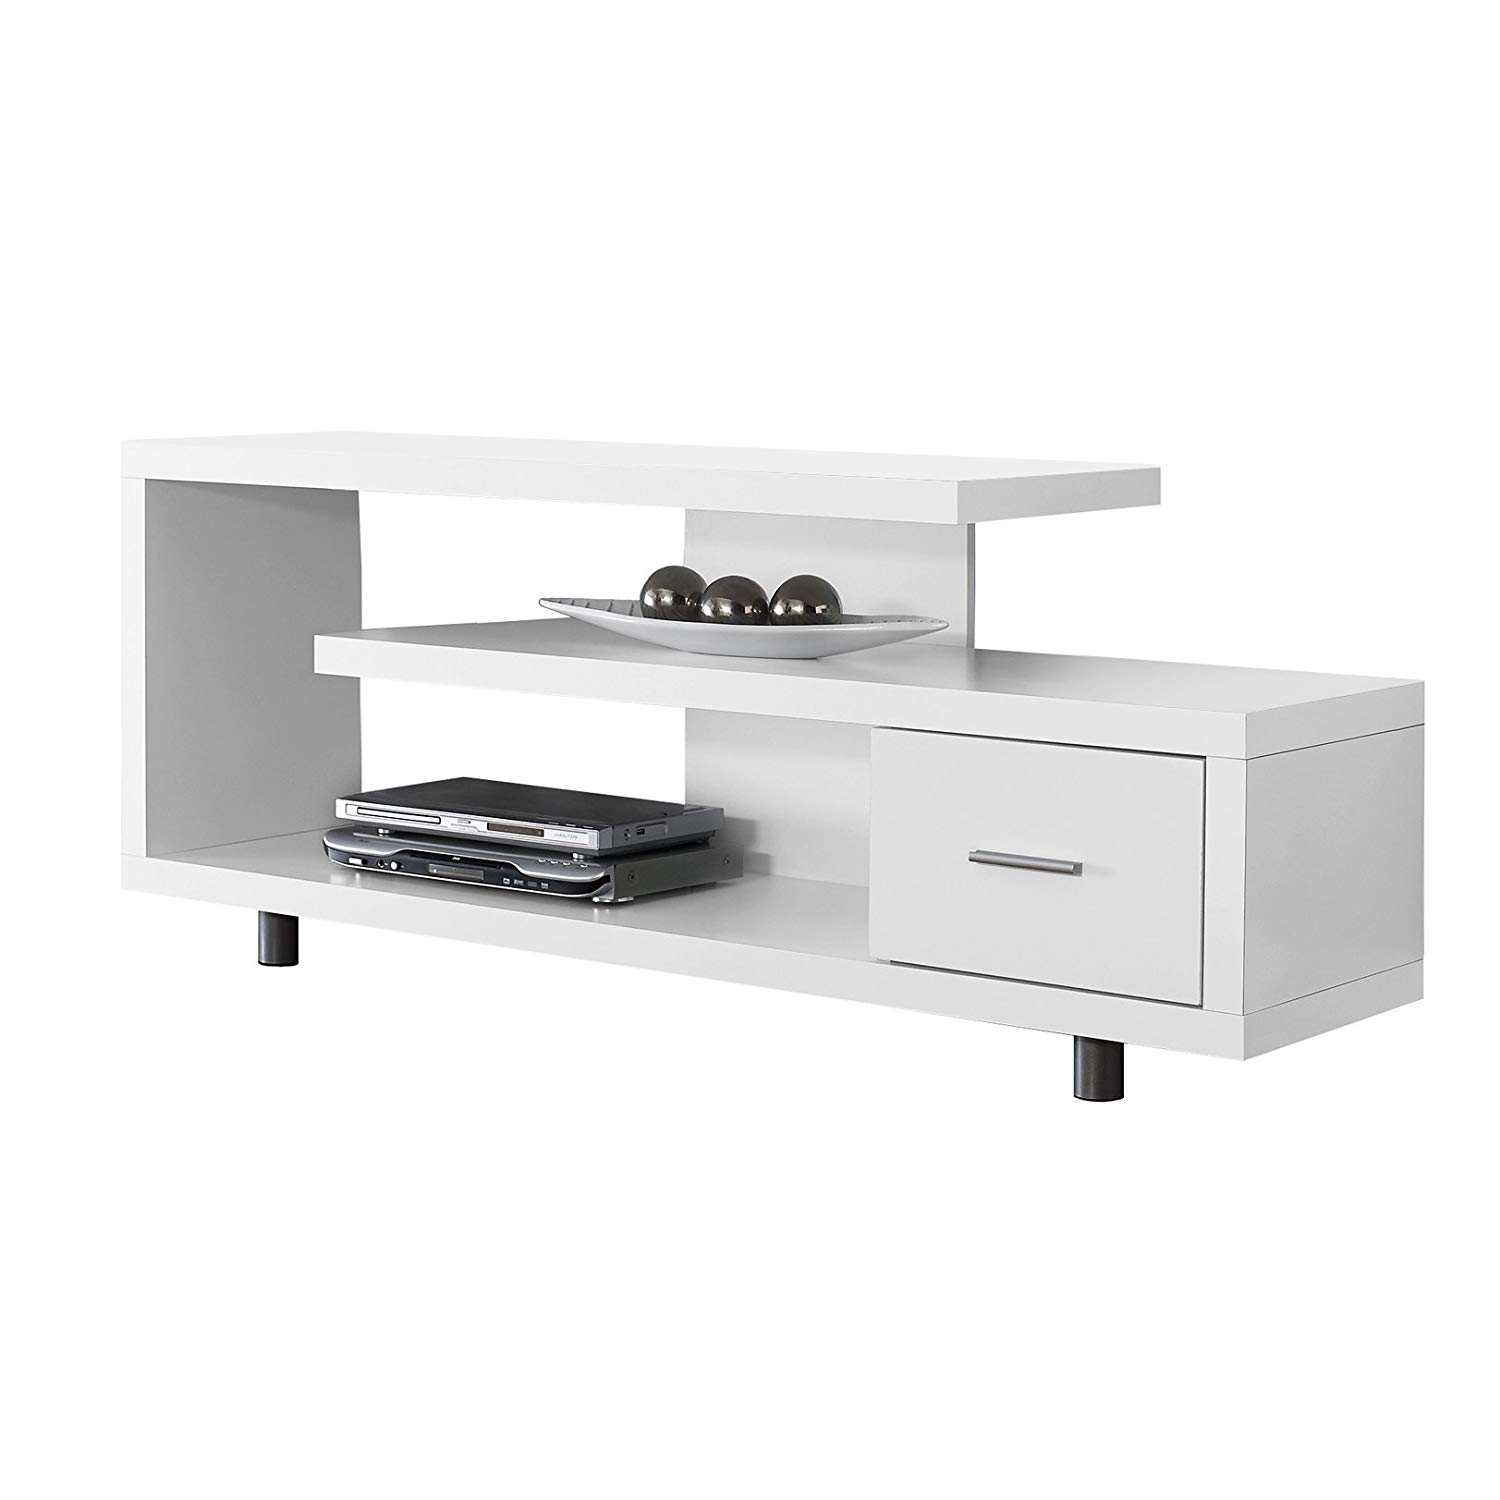 White Modern Tv Stand Fits Up To 60 Inch Flat Screen